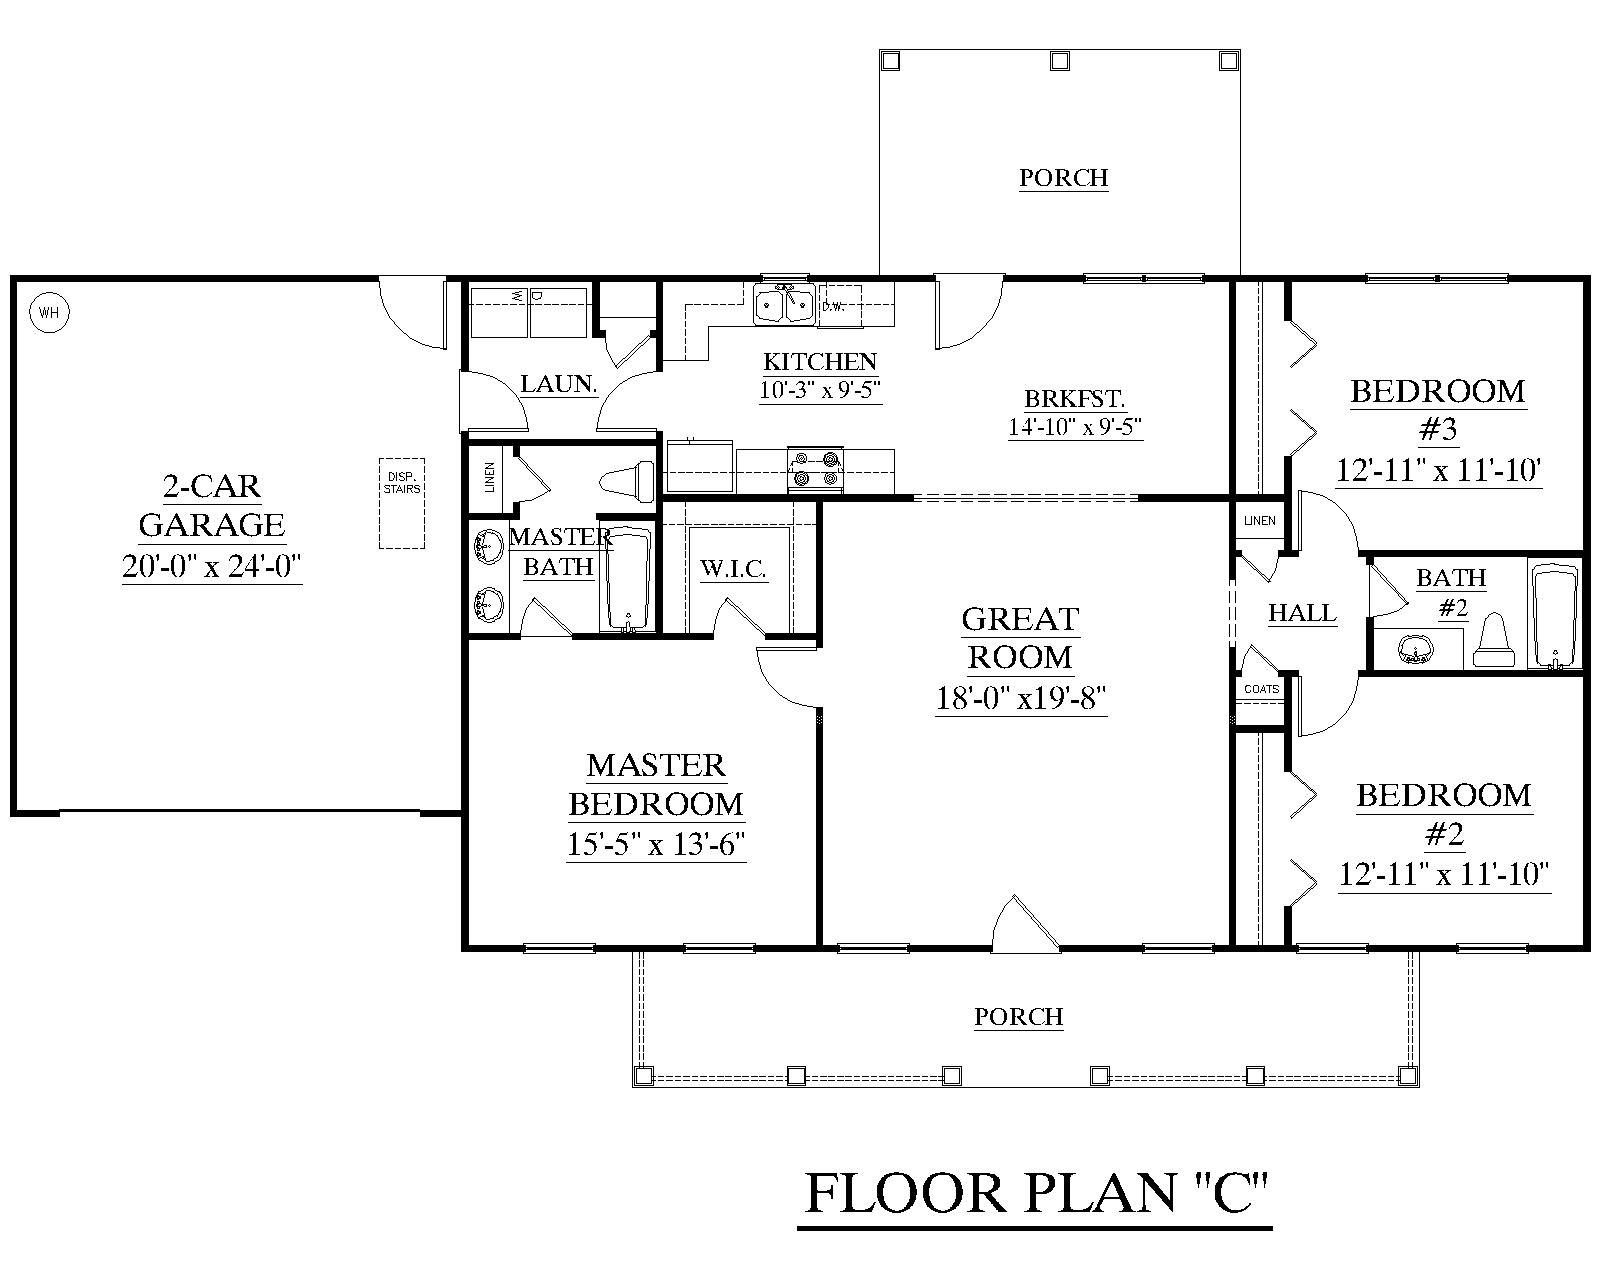 House Plan 1500 C The James C Attractive One Story Ranch